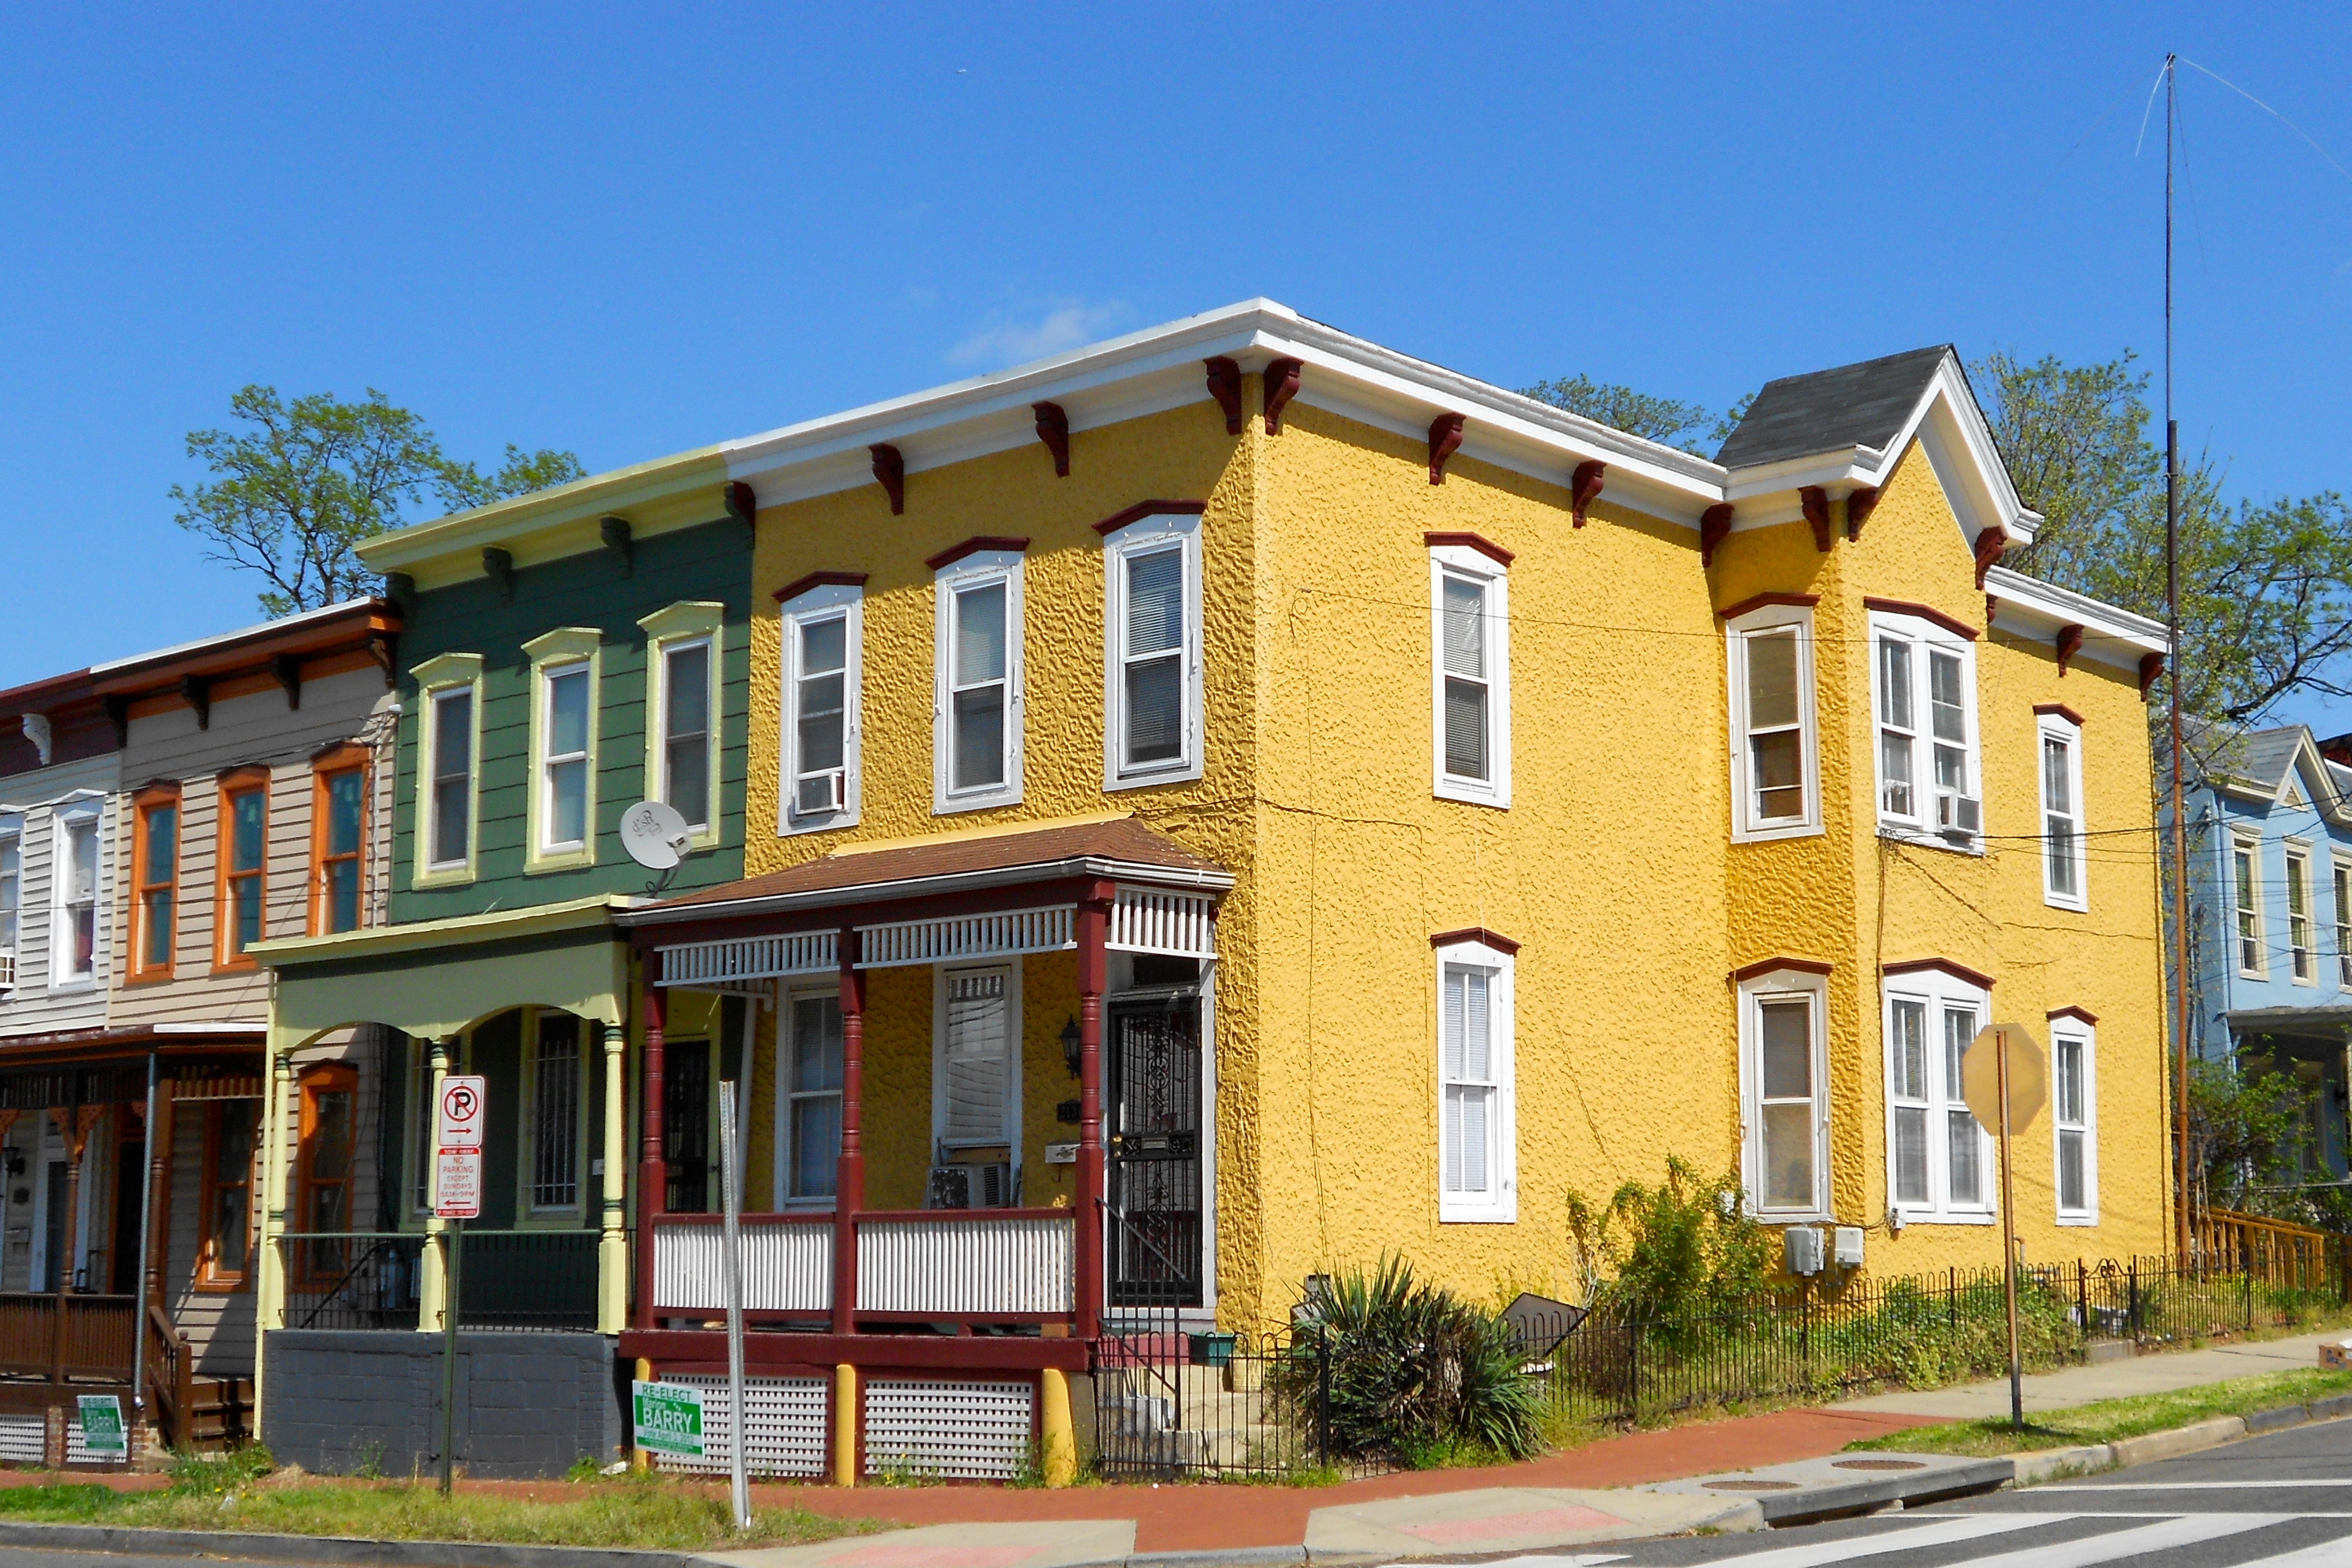 New Guidelines Allow More Solar in D.C. Historic Districts